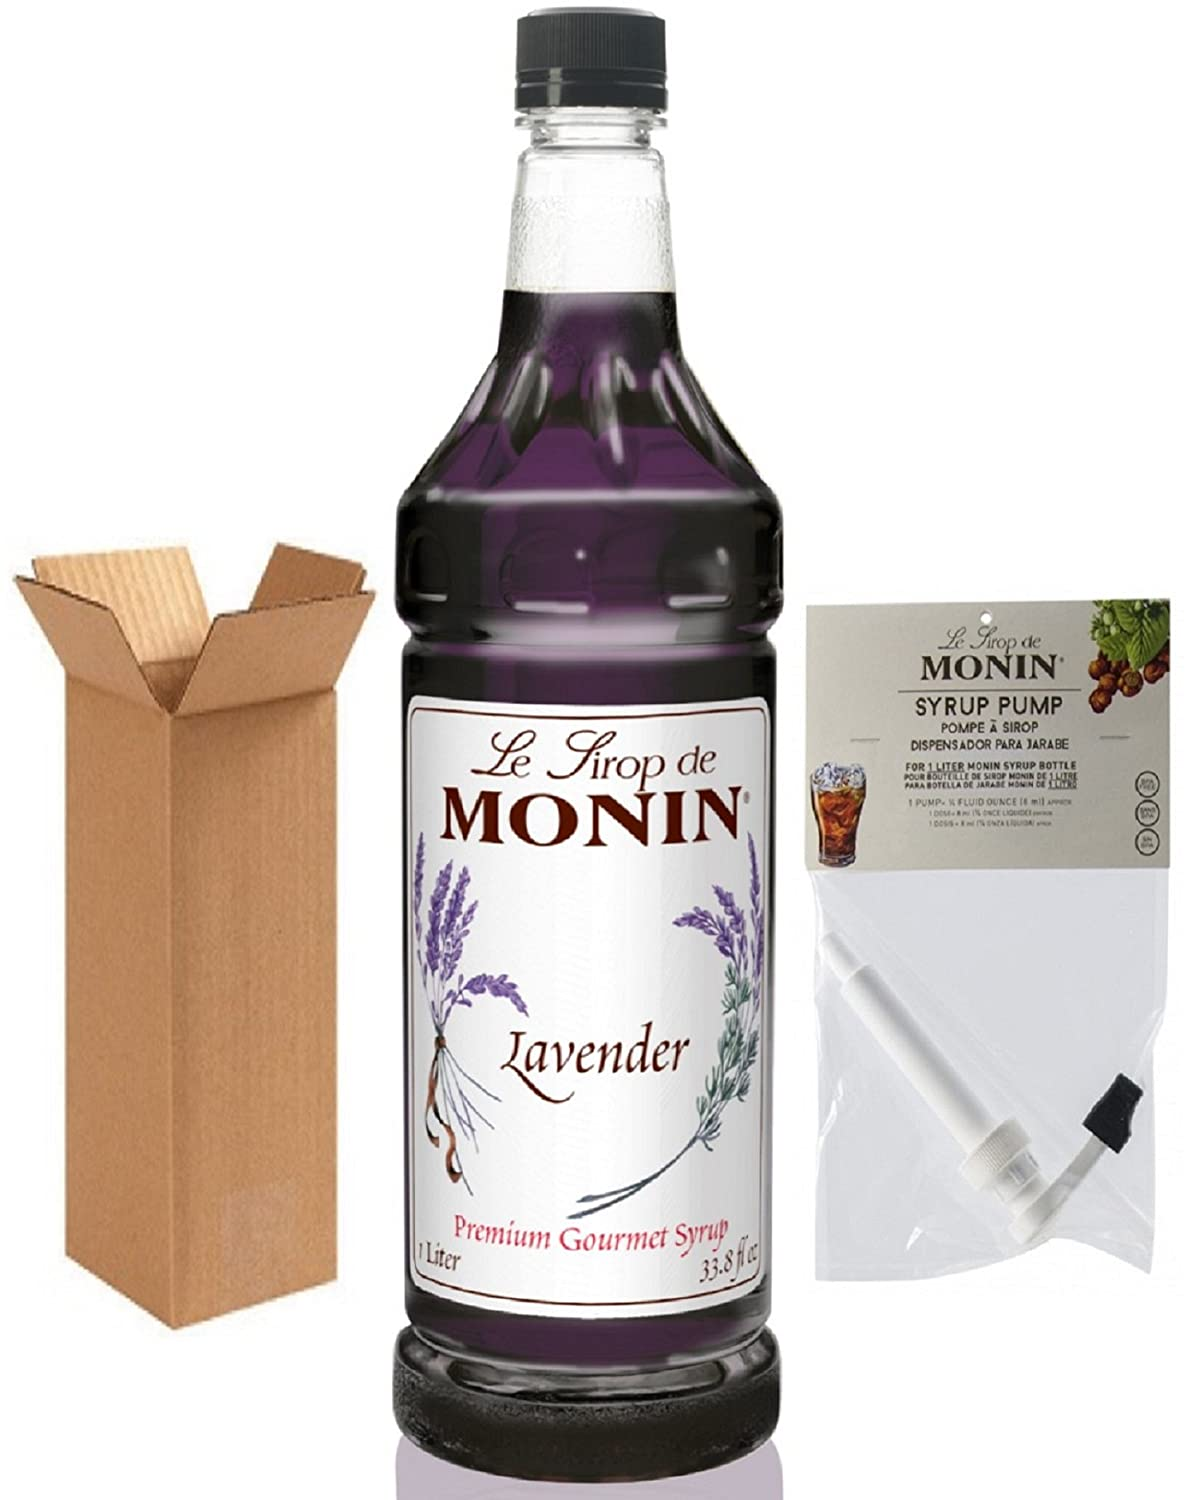 Amazon.com : Monin Lavender Syrup, 33.8-Ounce Plastic Bottle (1 Liter) with Monin Pump, Boxed. : Grocery & Gourmet Food